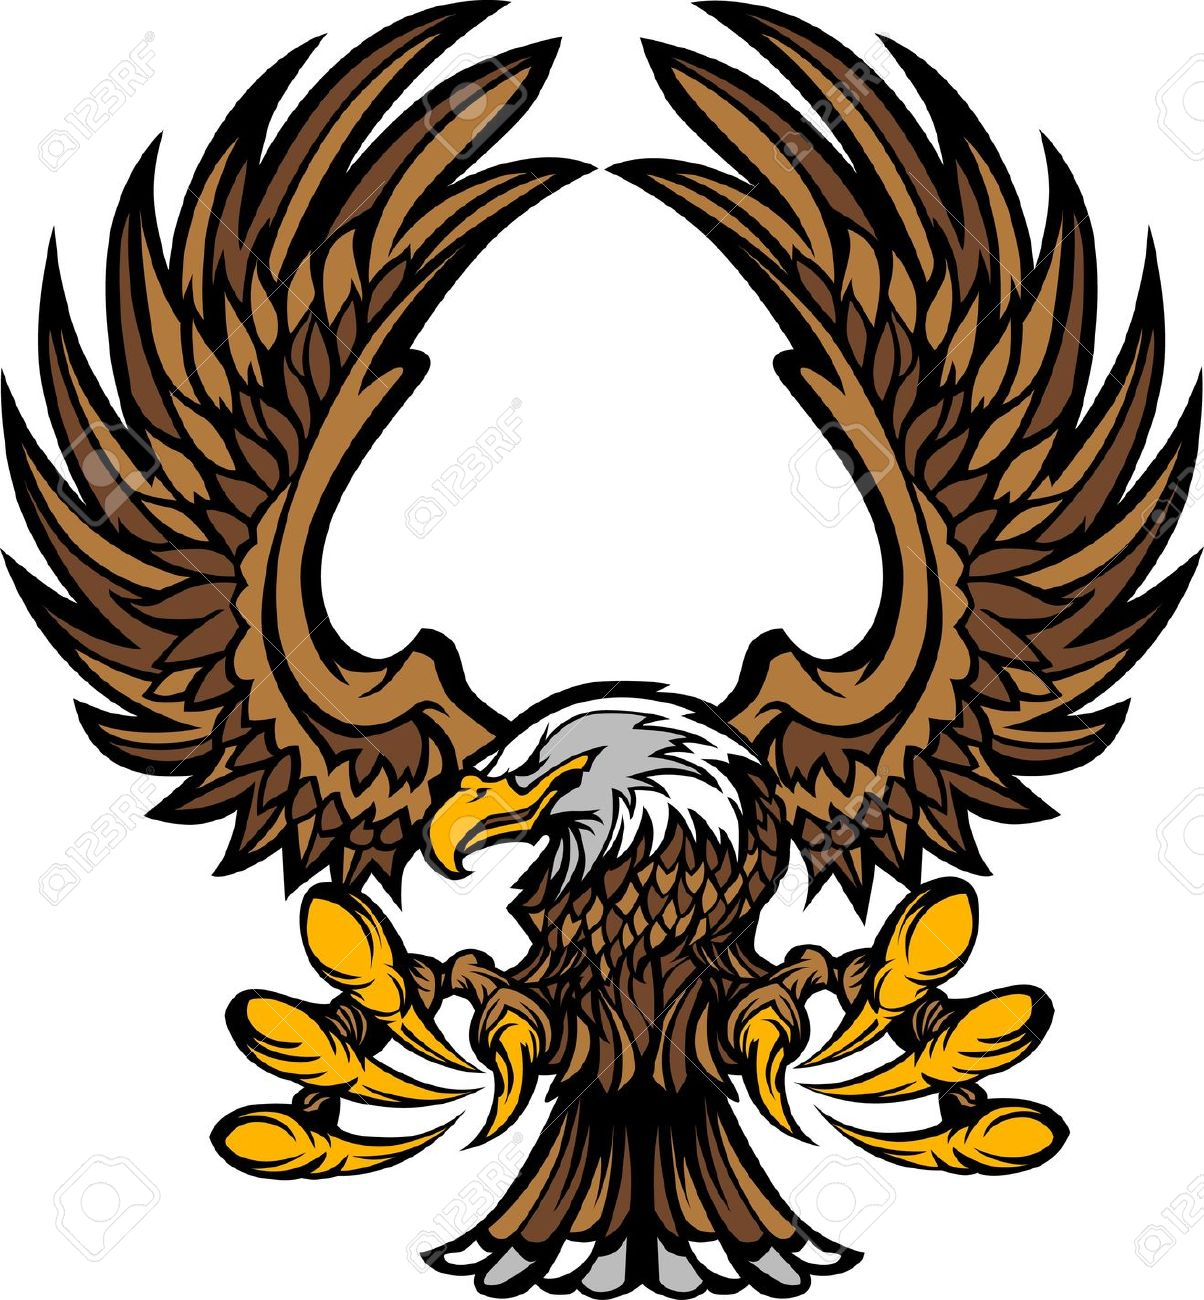 1204x1300 Golden Eagle Clipart Falcon Football